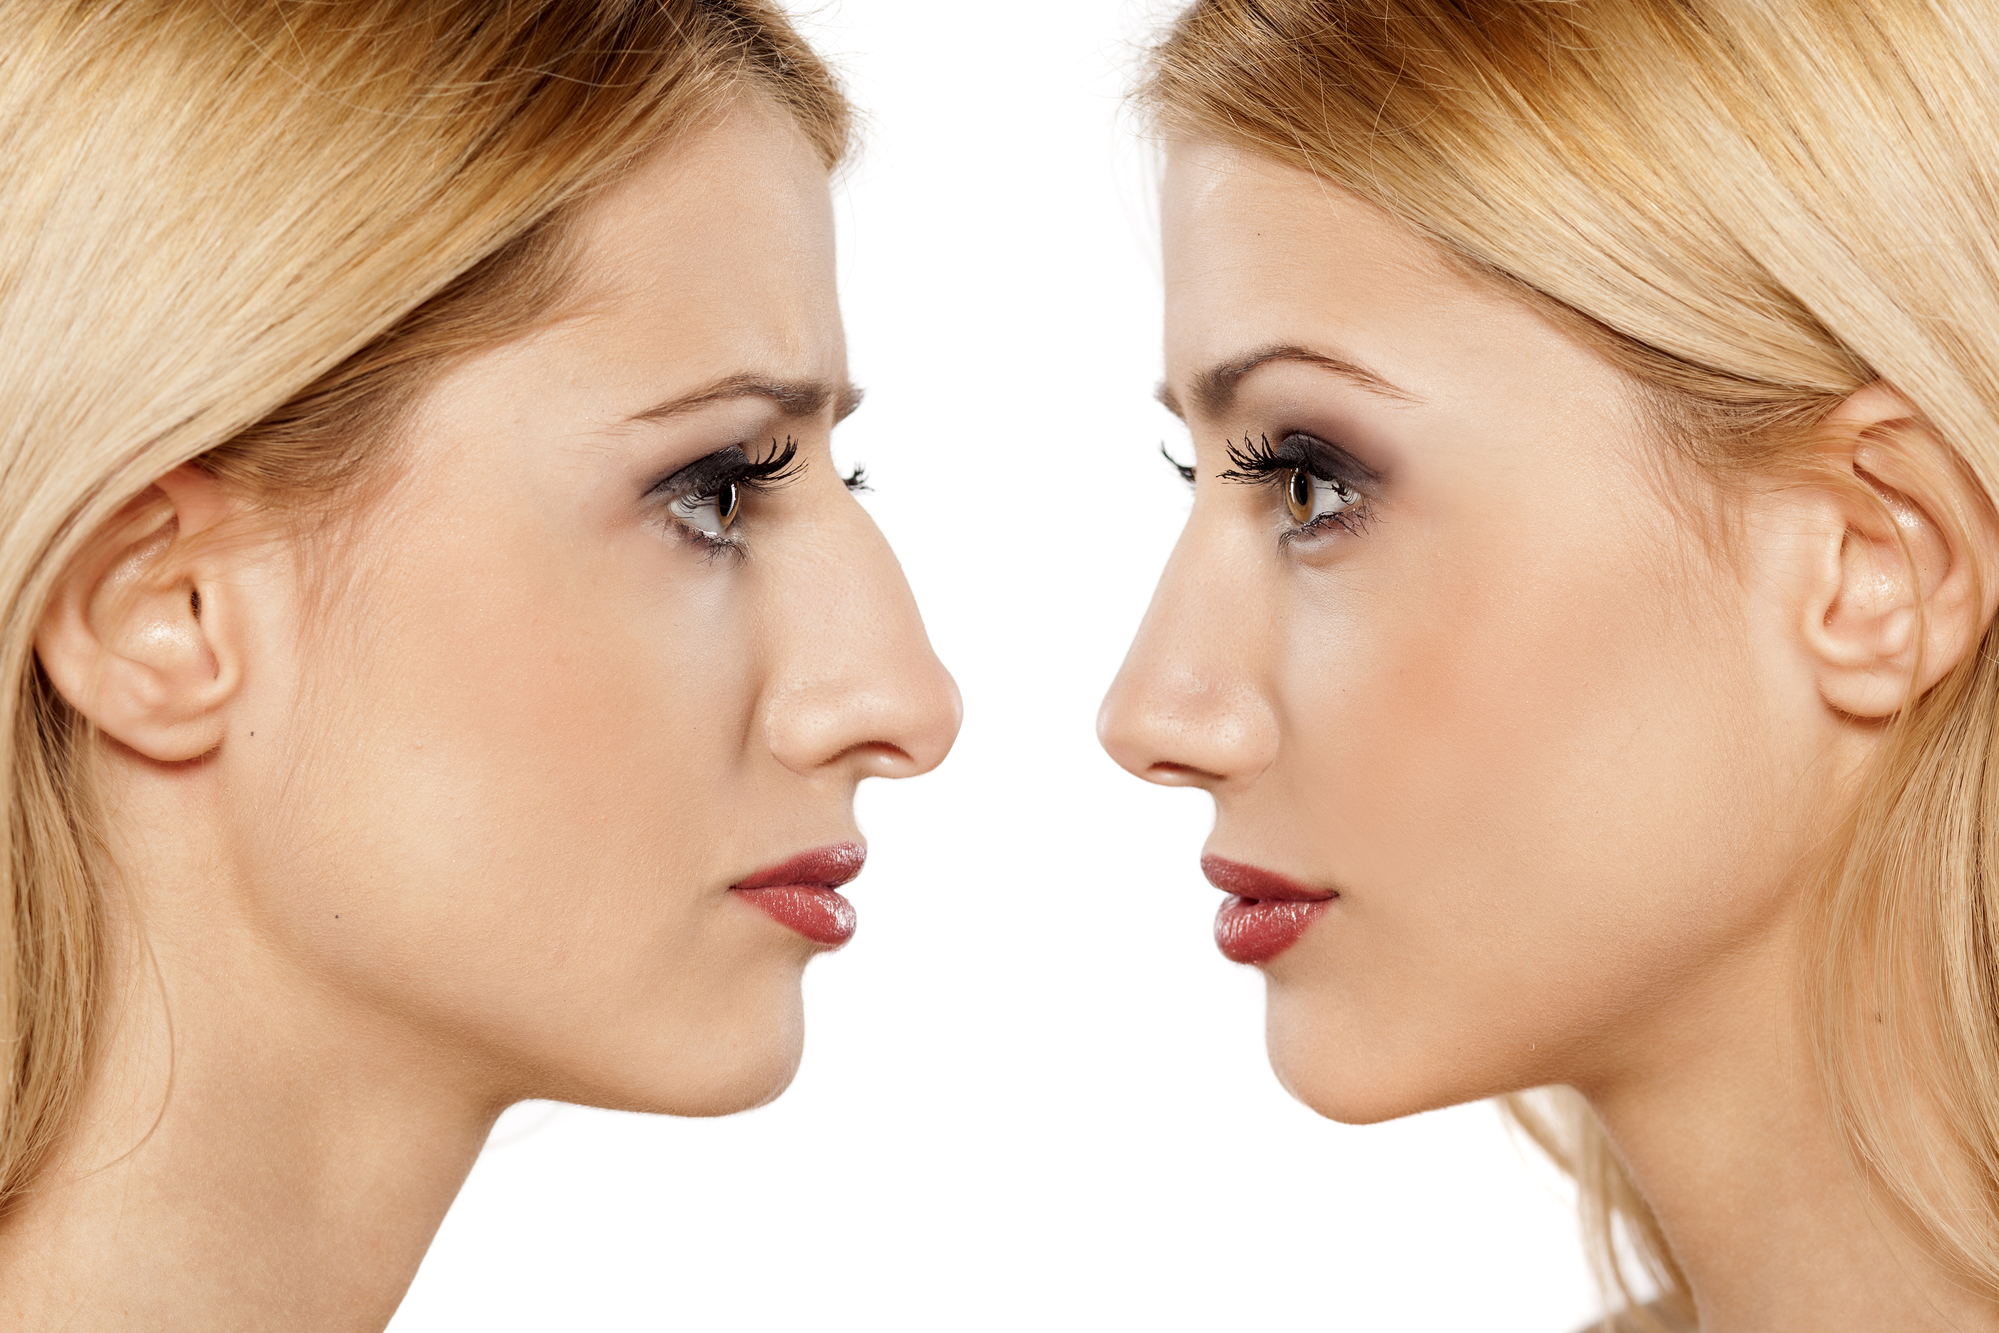 How to Take Care of Yourself During Rhinoplasty Recovery